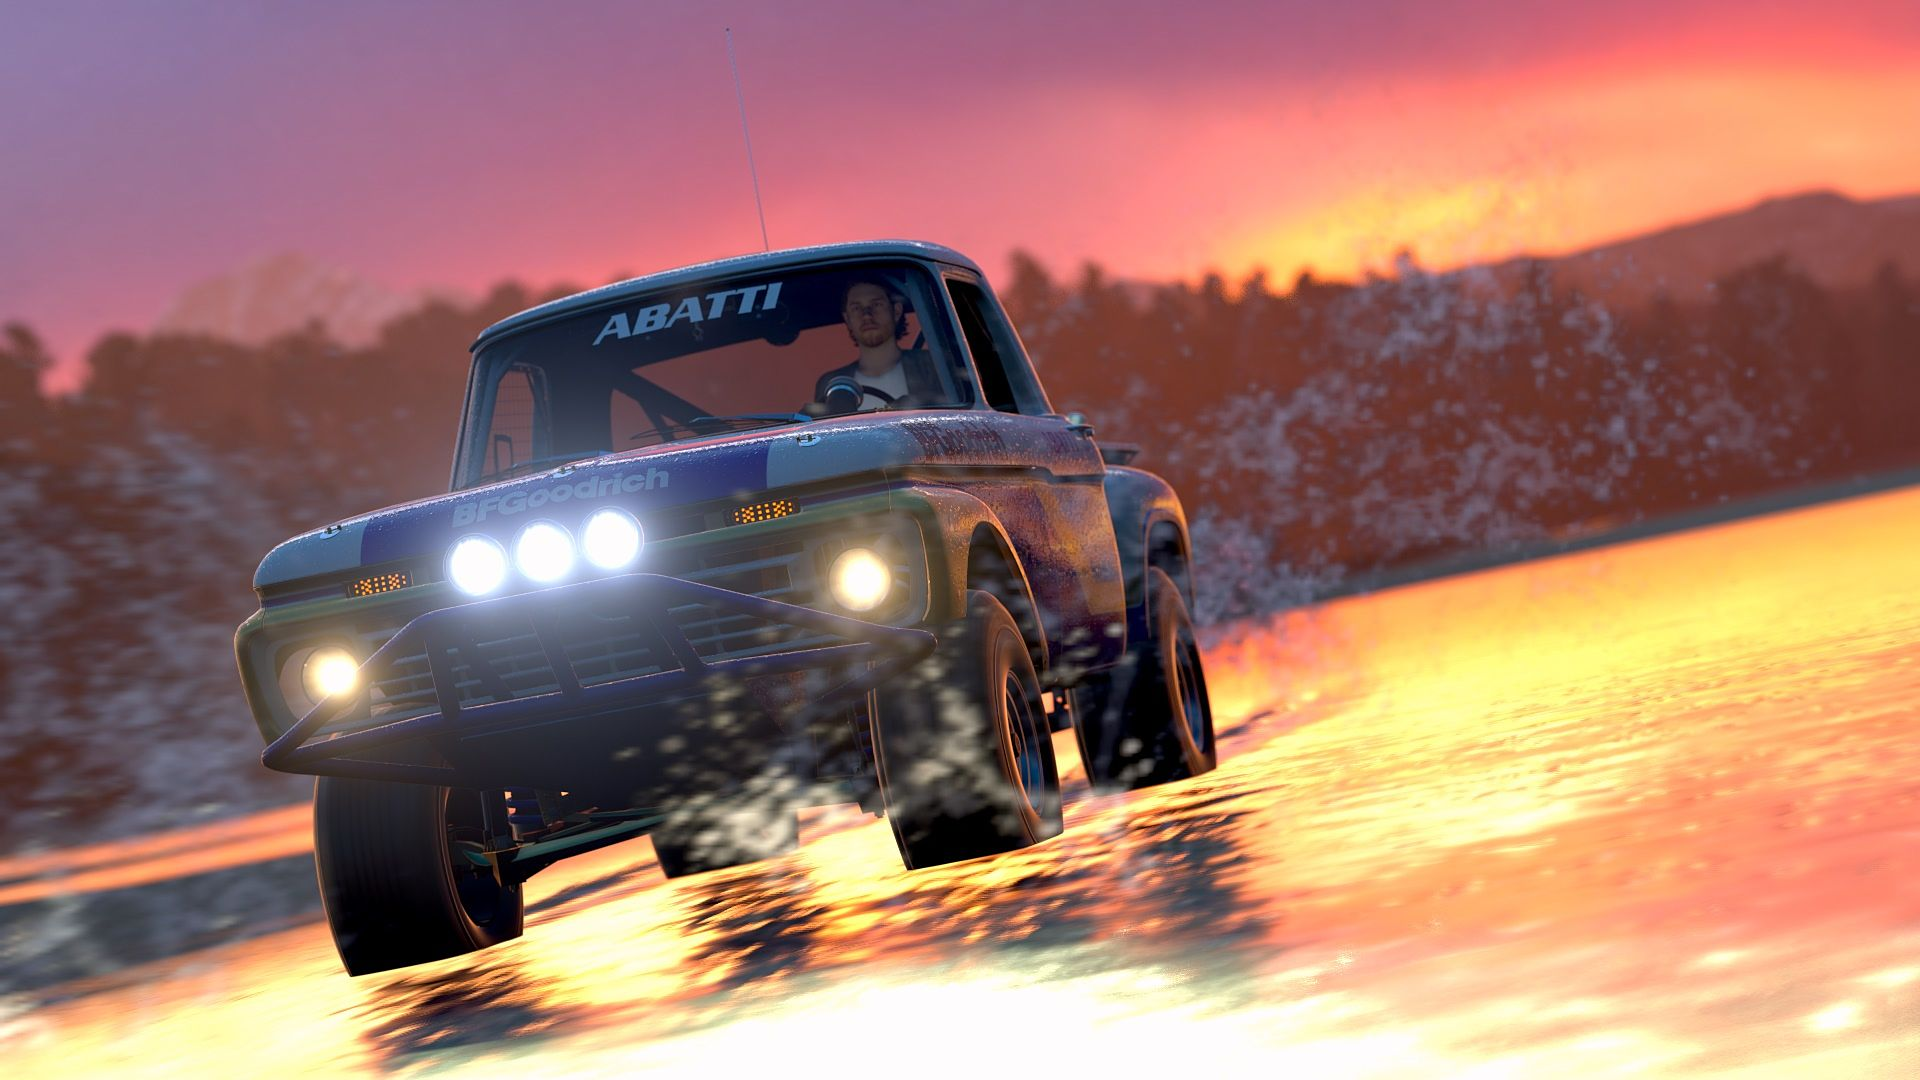 You 1966 Ford F 100 Flareside Abatti Racing Trophy Truck 2107572 Hd Wallpaper Backgrounds Download